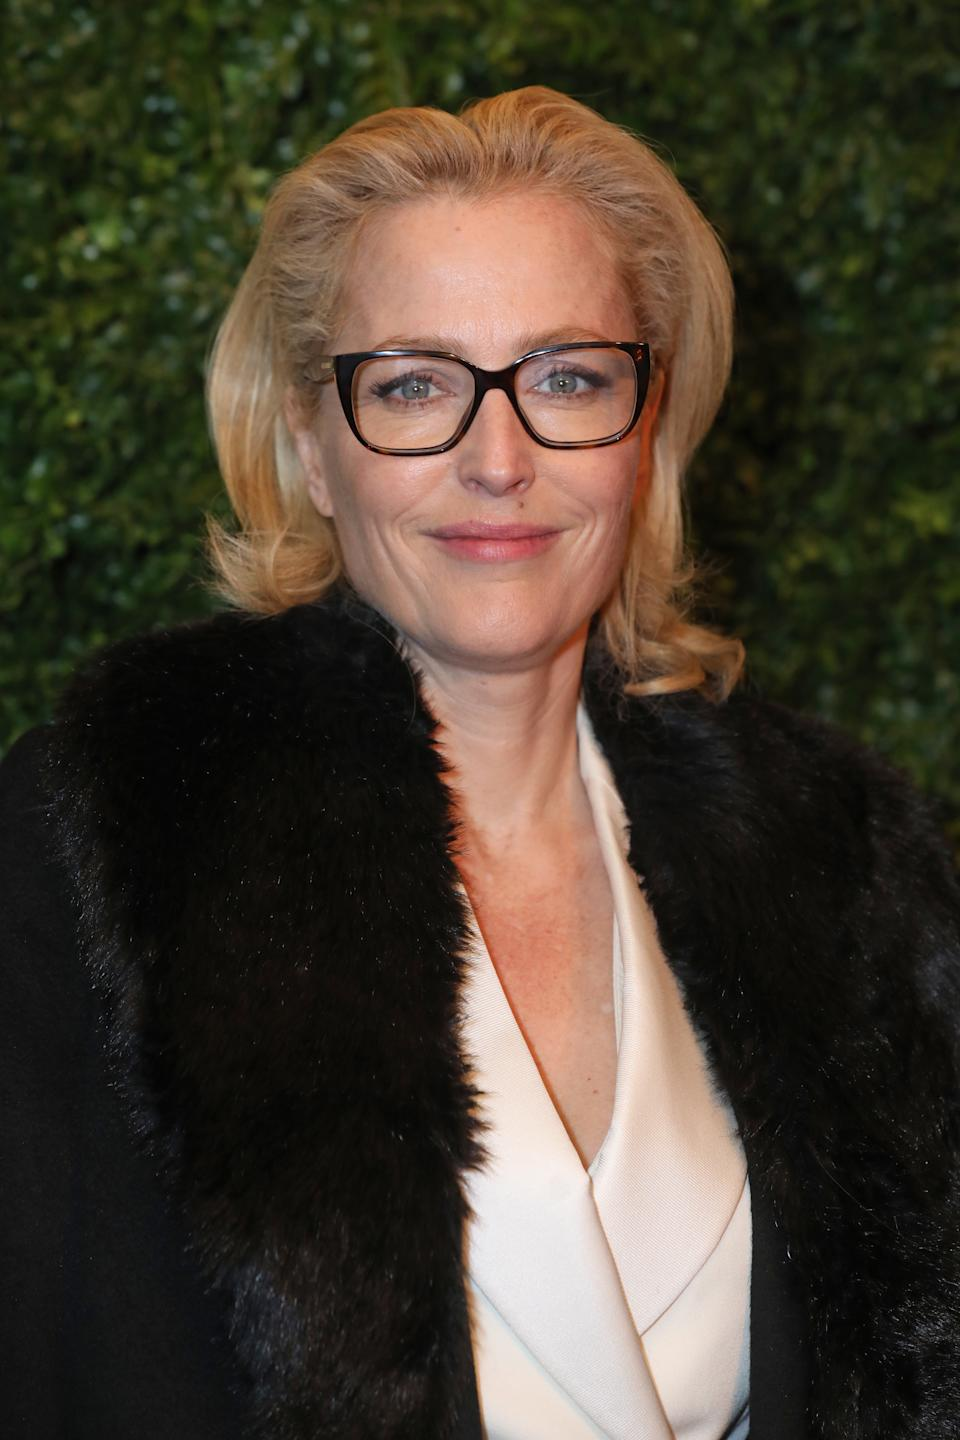 Gillian Anderson arriving at the Charles Finch and Chanel pre-Bafta party at 5 Hertford Street in Mayfair, London.